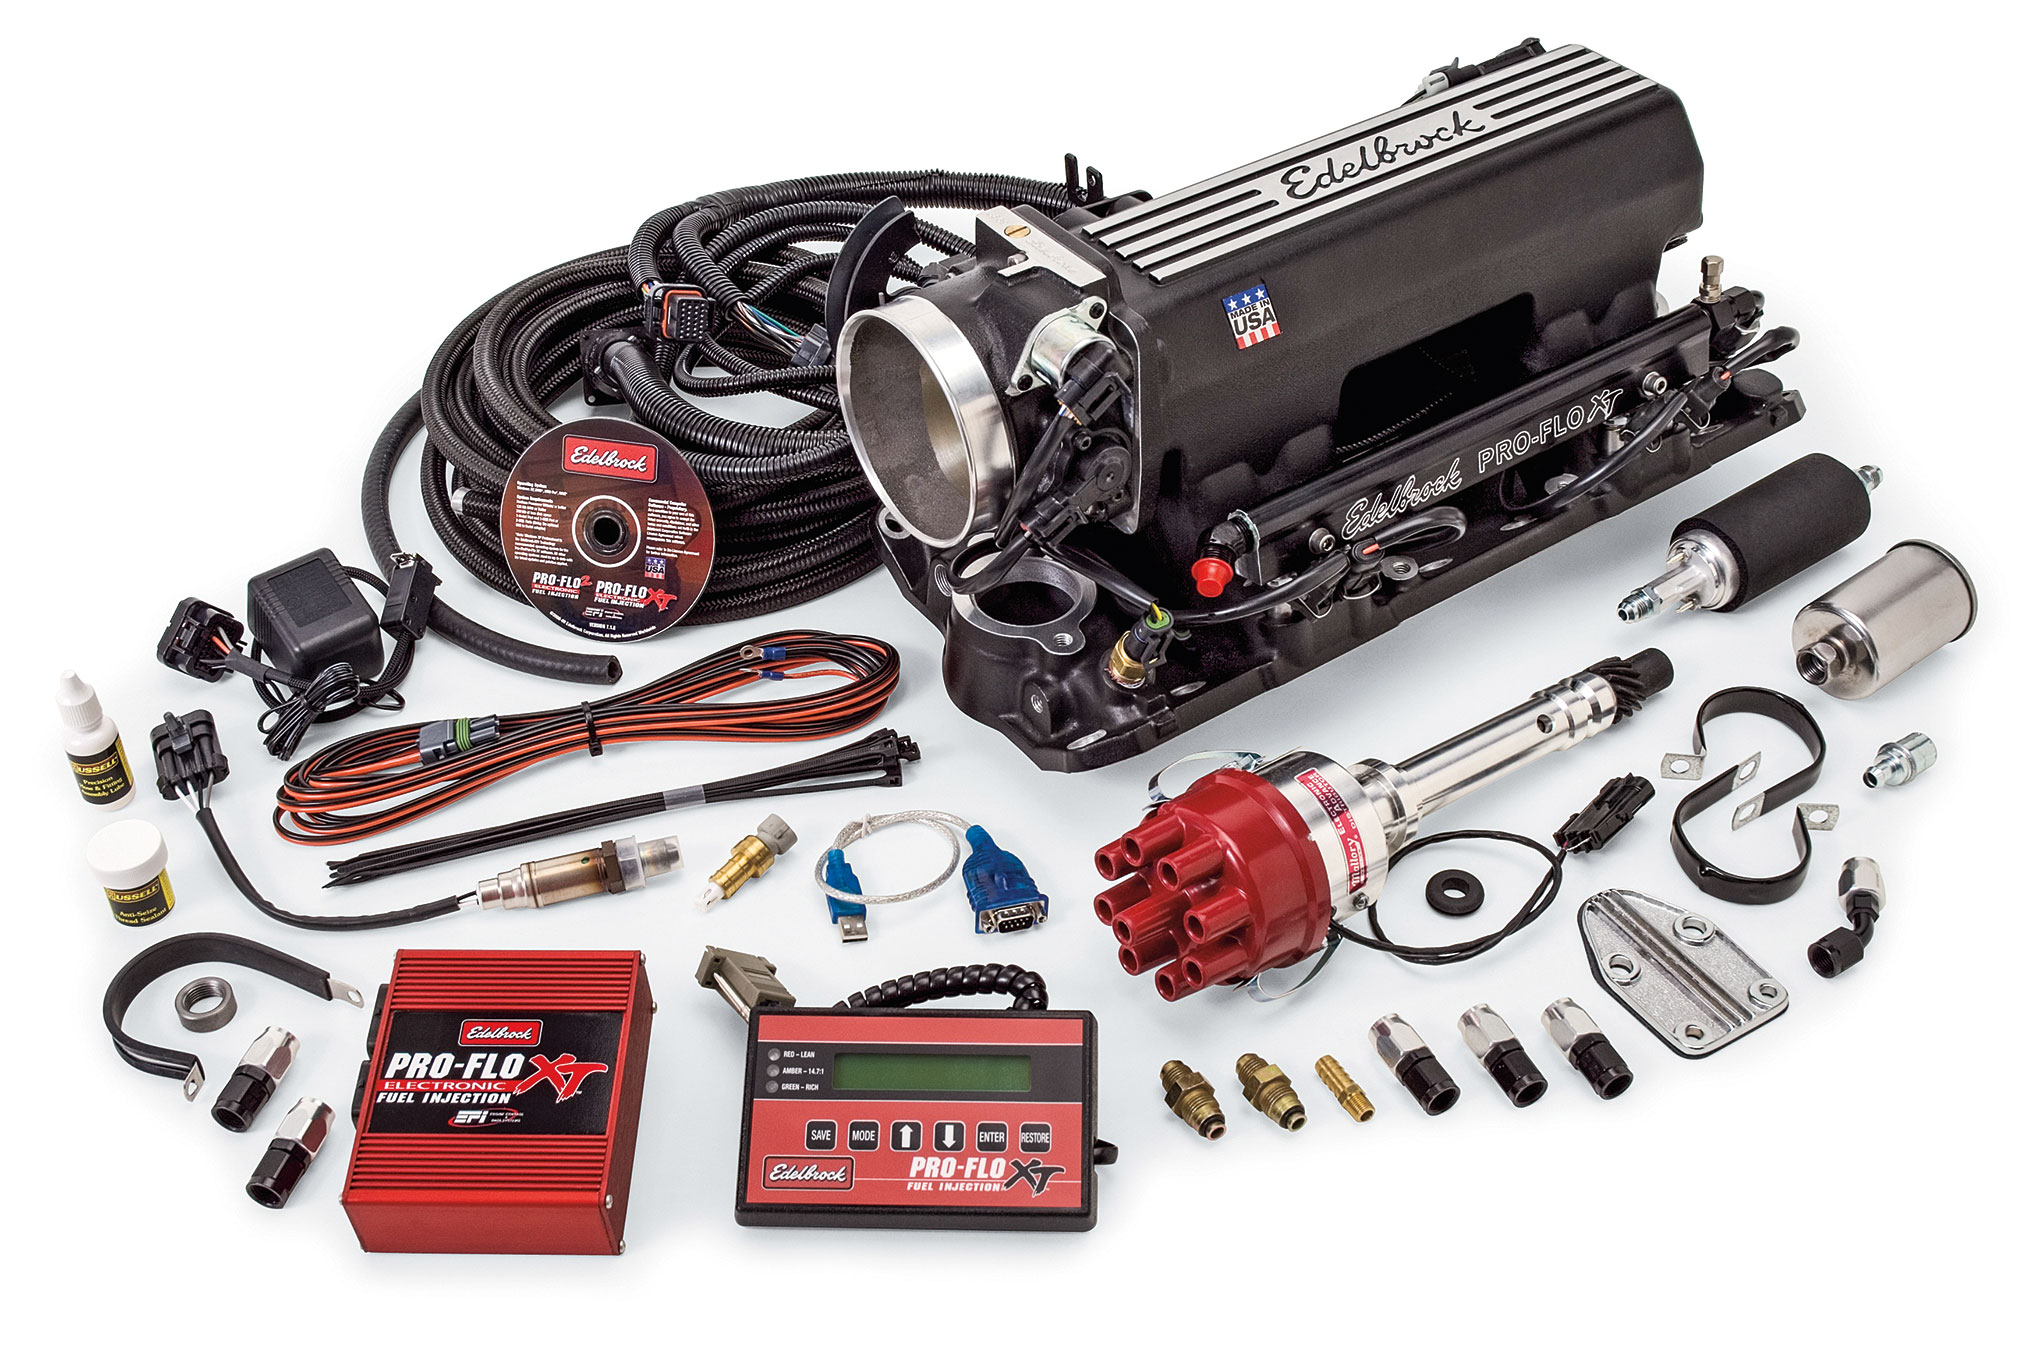 fuel injection kits to replace your carb carb to tbi wiring harness kit [ 2040 x 1360 Pixel ]